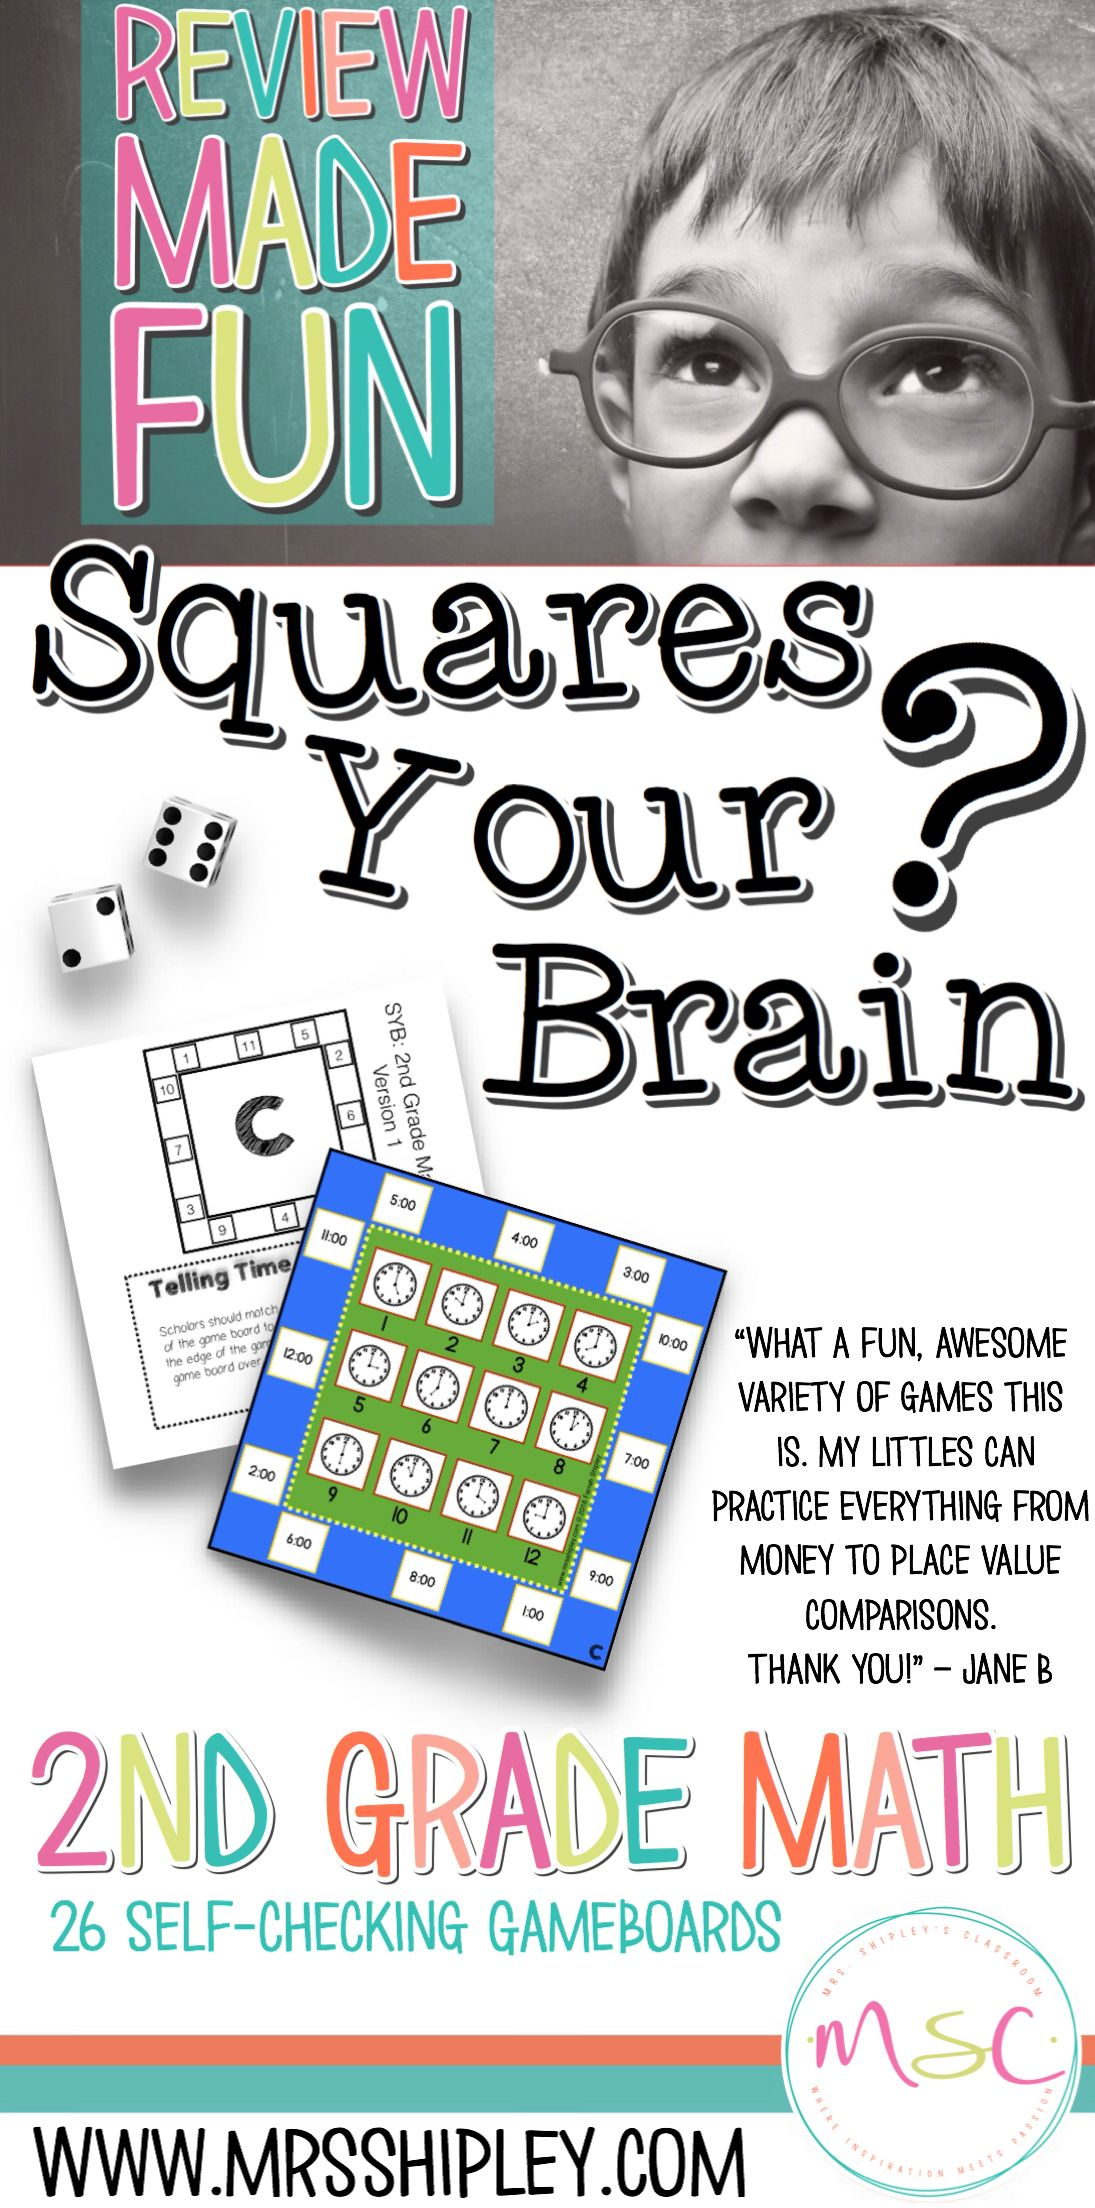 Second Grade Math Review Games (With images